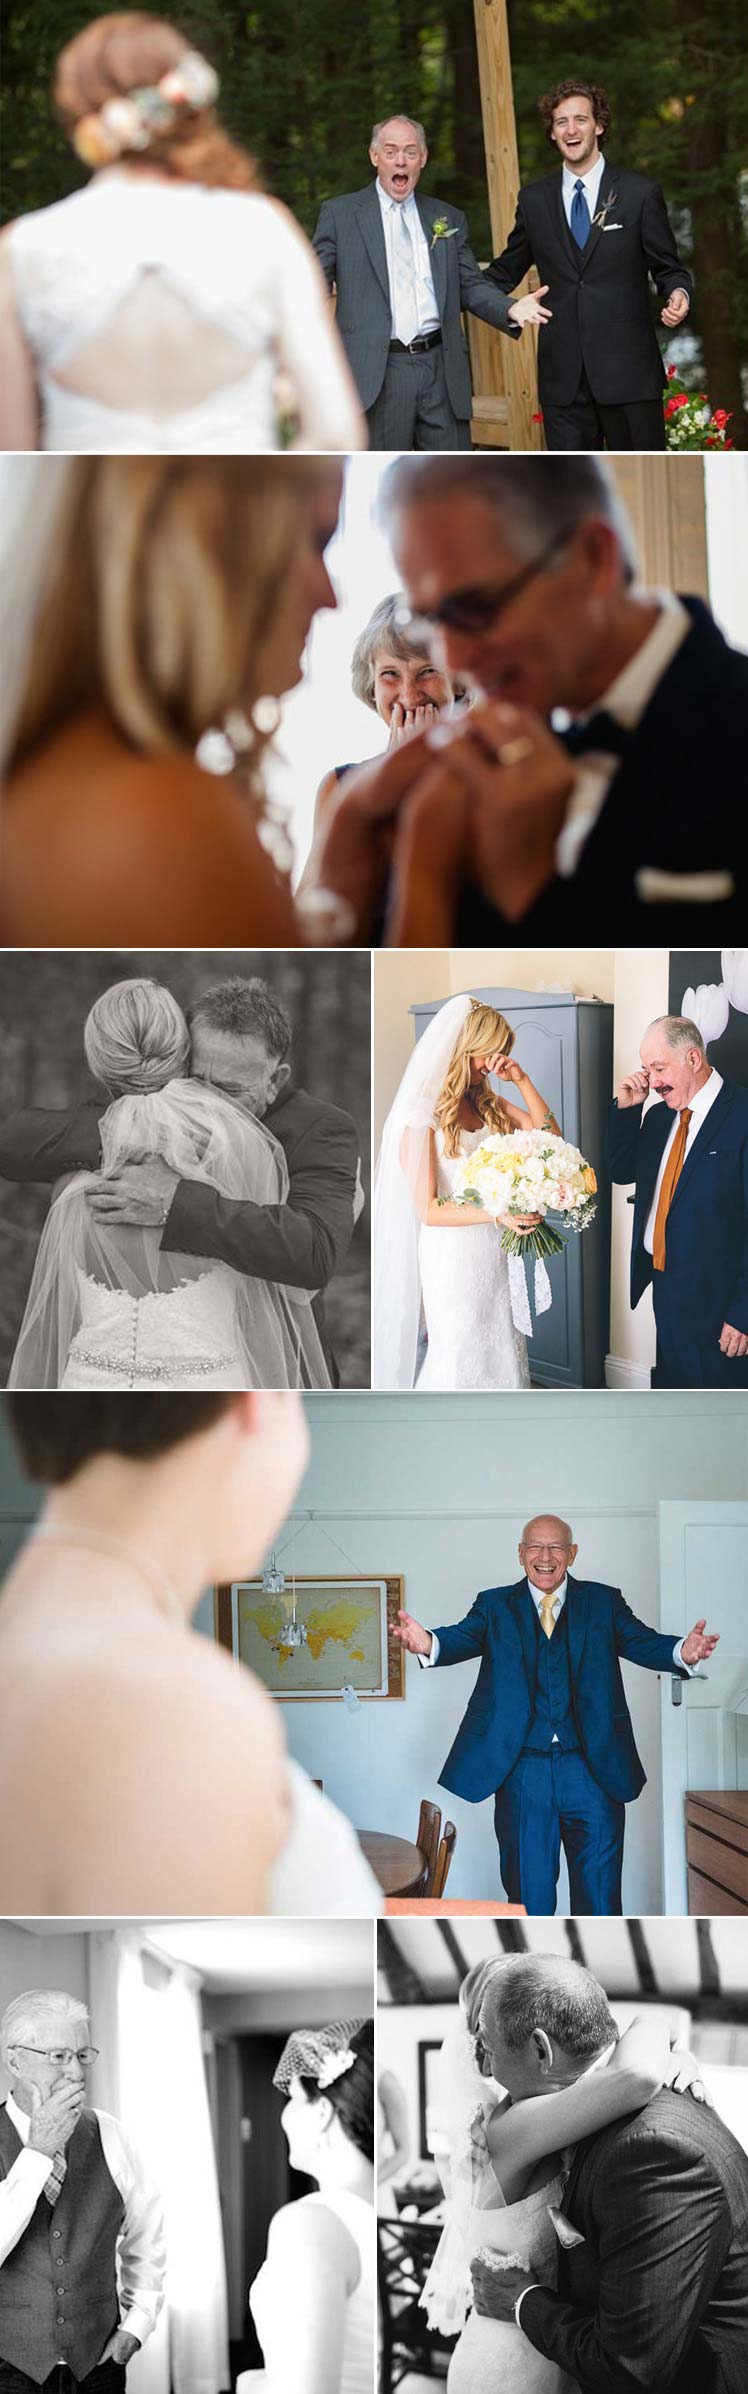 emotional first looks between the bride and her father